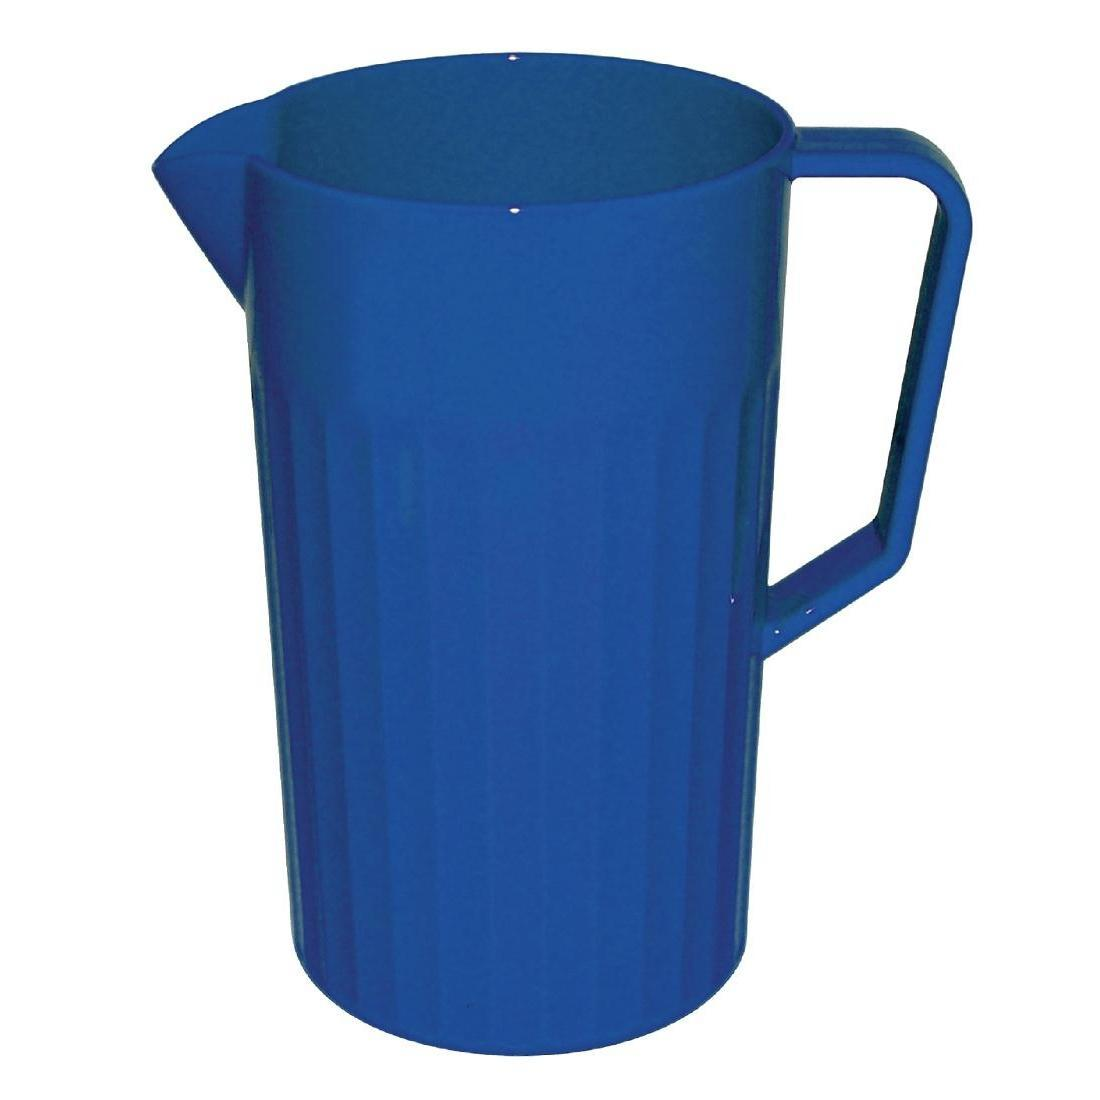 Kristallon Polycarbonate Jug Blue 1.4Ltr - Each - CE280